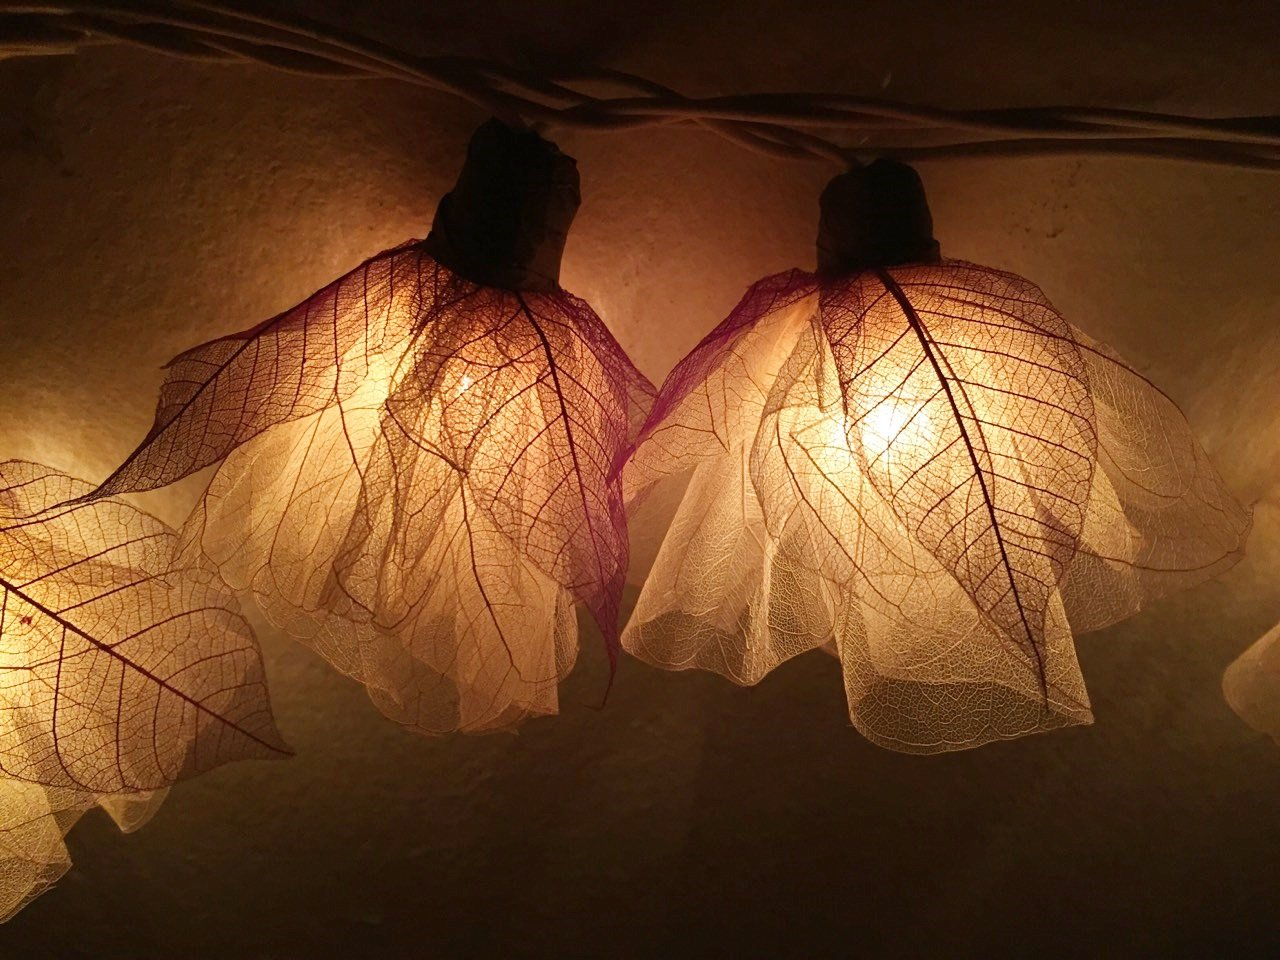 String Lights 20 White Romantic Carnation Flower Fairy String Lights Wedding Party Floral Home Decor 3.5m